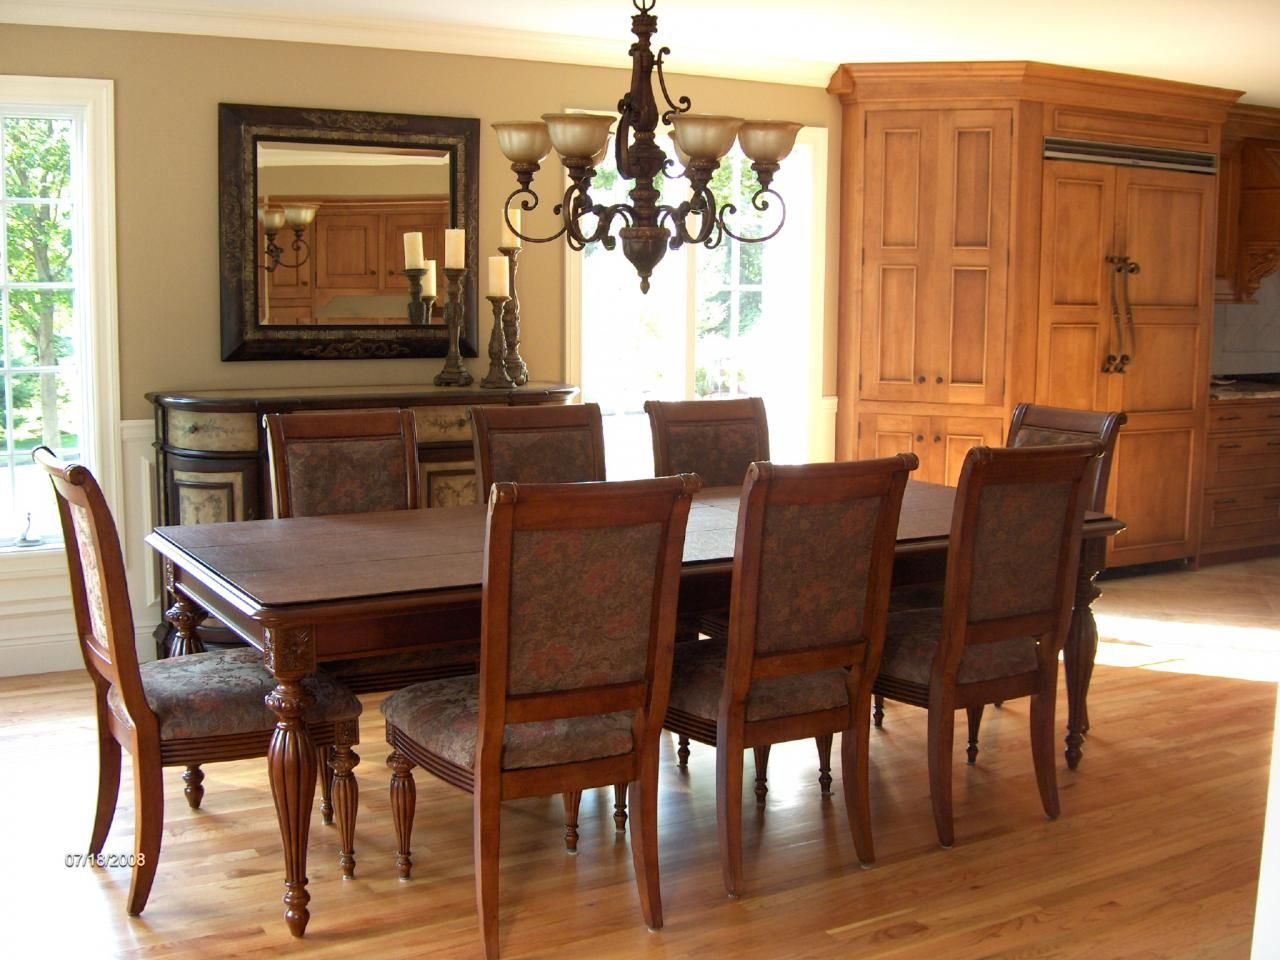 Dining Room 1000 Images About Dining Room On Pinterest Classic Dining Room